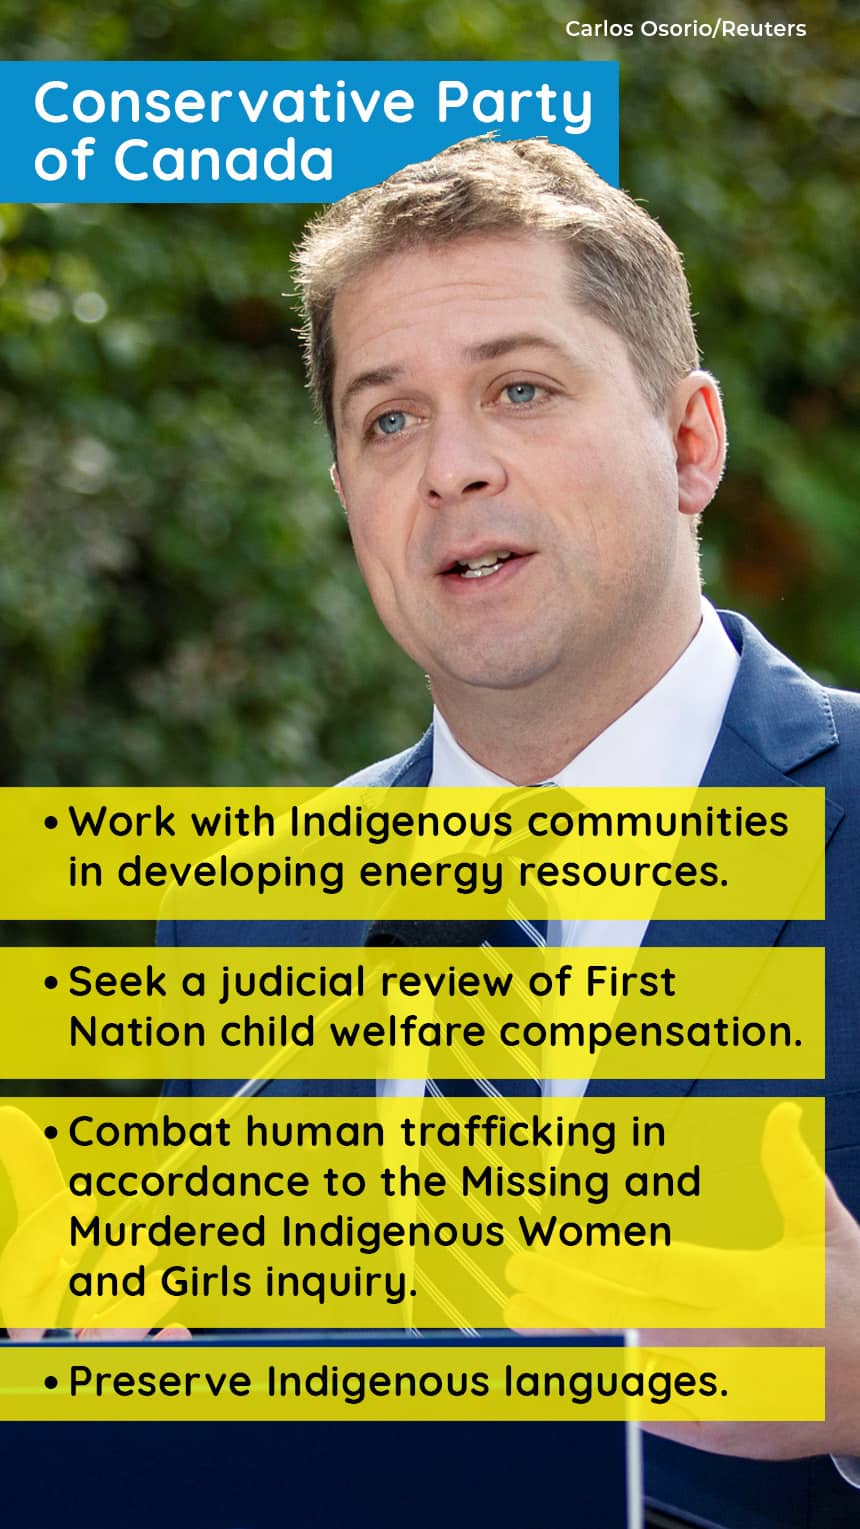 An image of Andrew Scheer with text that says,  CONSERVATIVE PARTY OF CANADA Work with Indigenous communities in developing energy resources, Seek a judicial review of First Nation child welfare compensation,Combat human trafficking in accordance to the Missing and Murdered Indigenous Women and Girls inquiry. Preserve Indigenous languages.